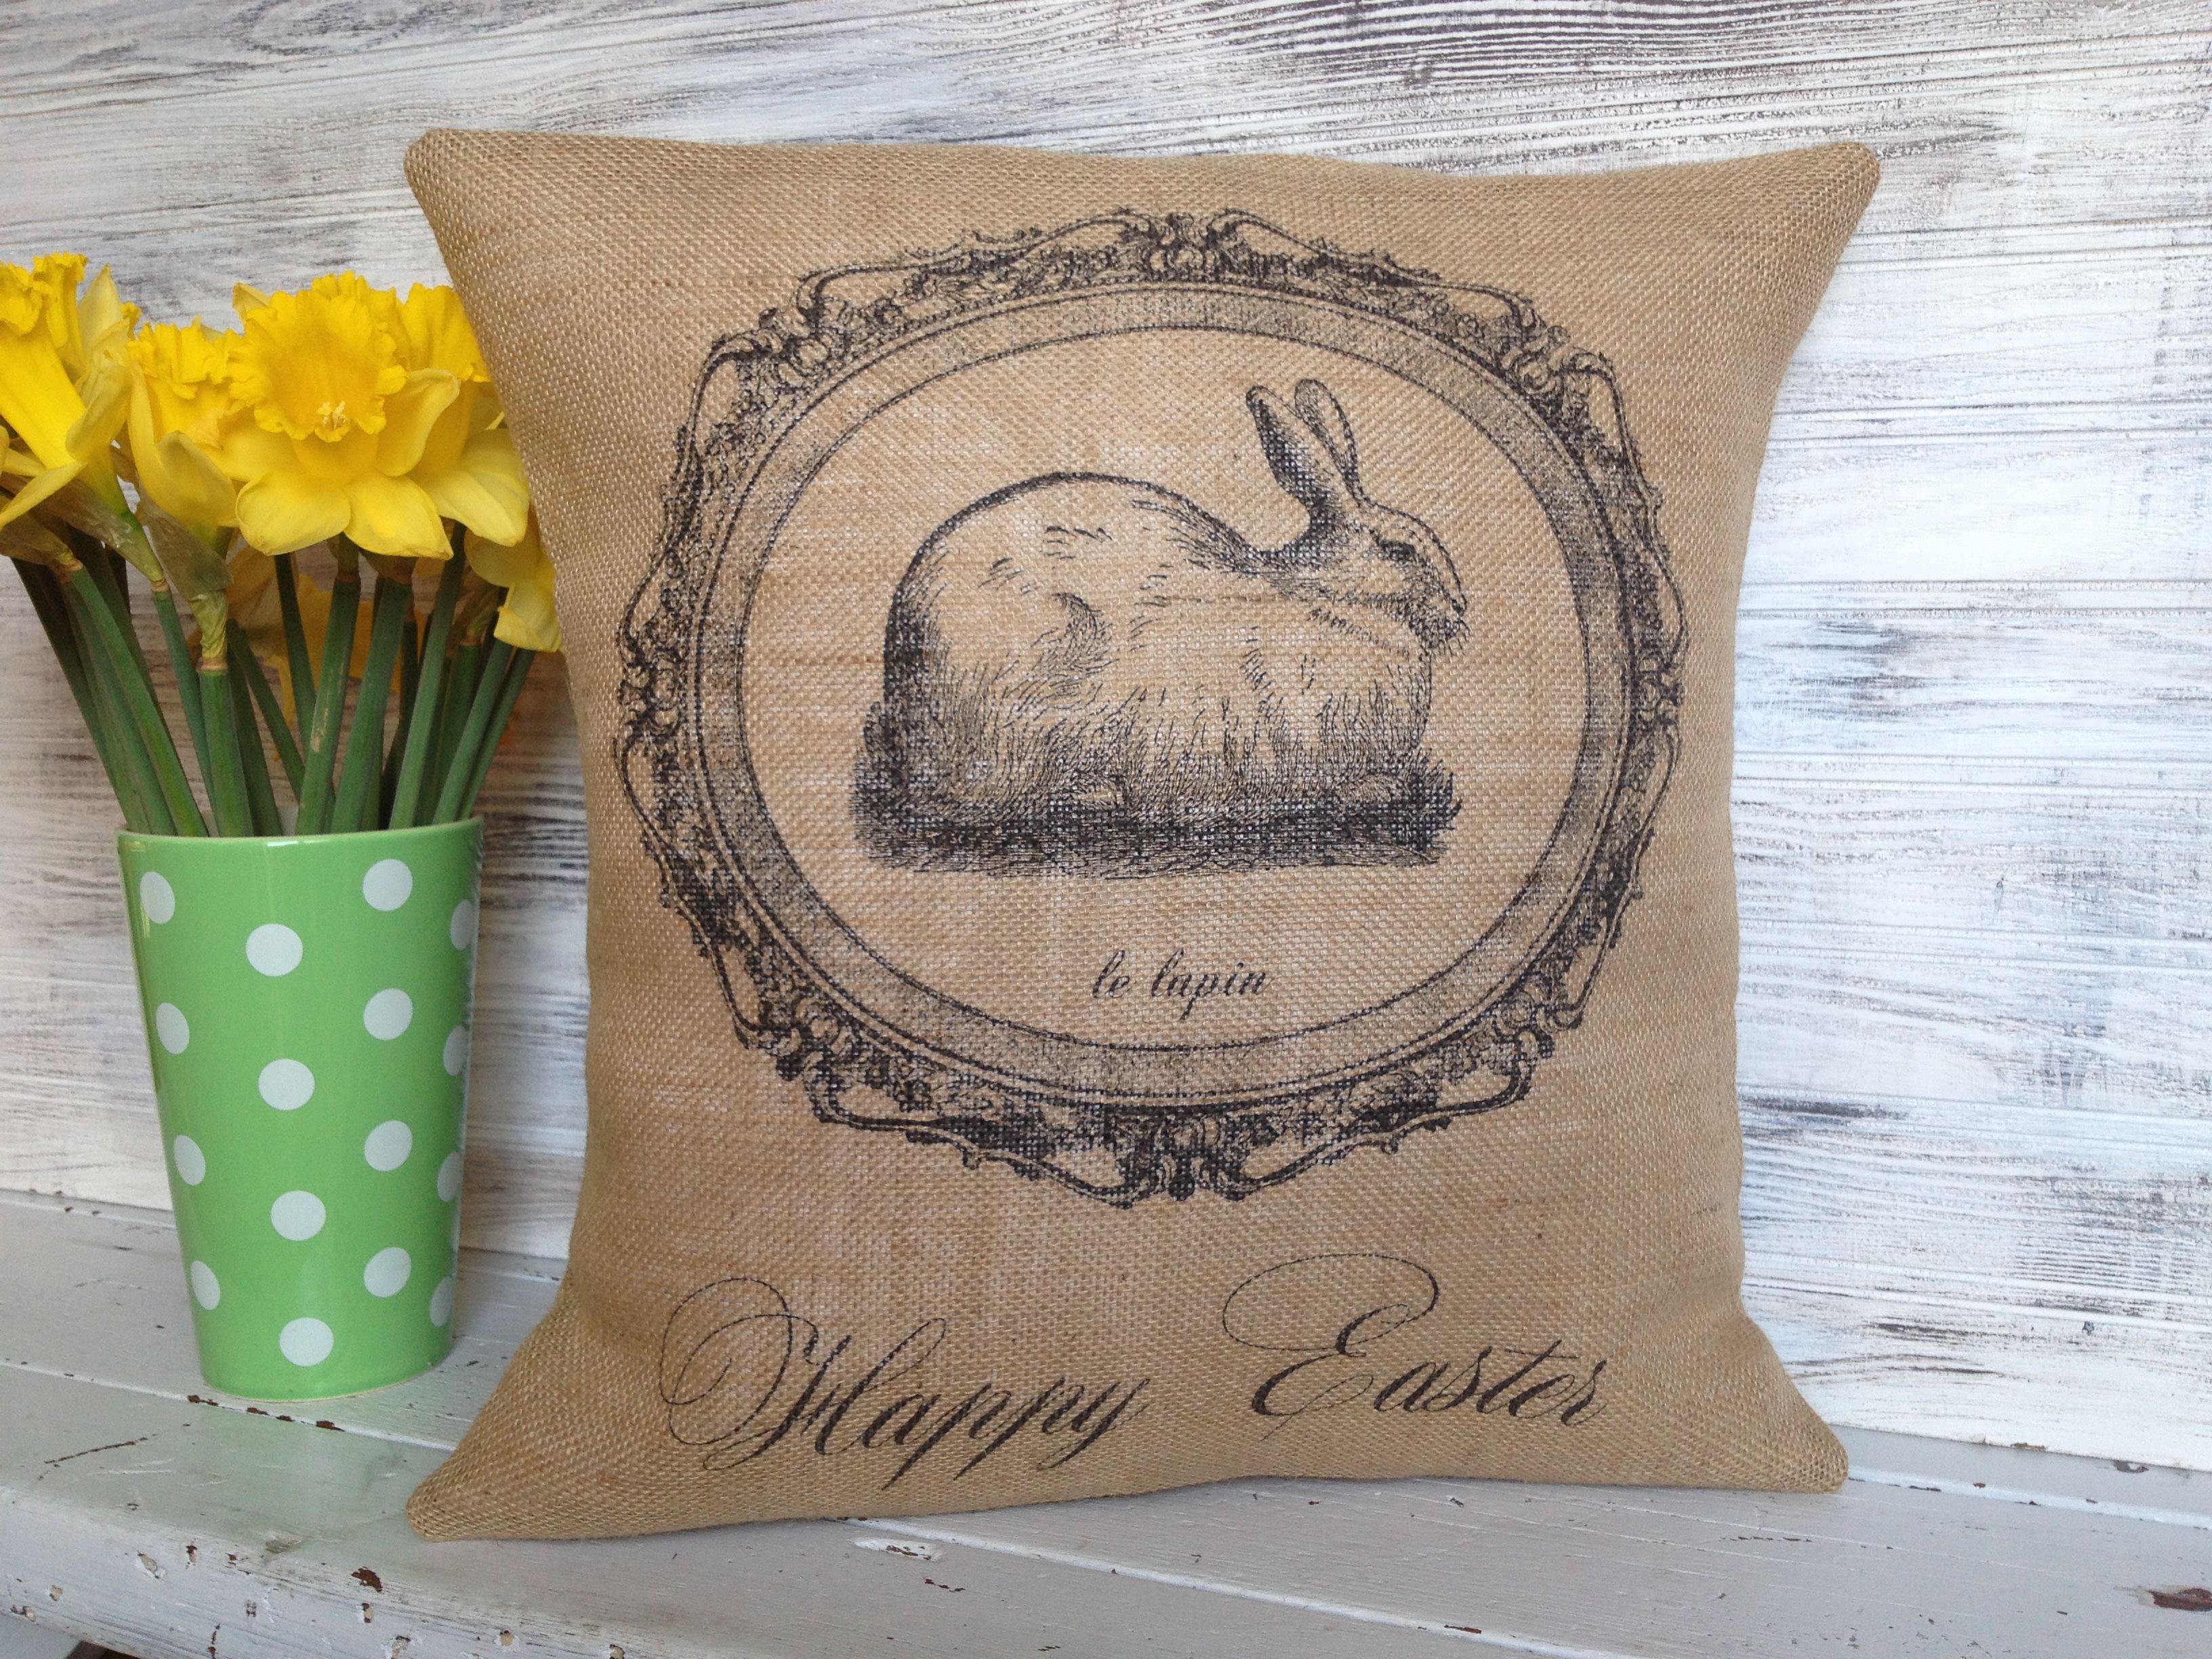 French Style Bunny Easter Pillow https://www.etsy.com/listing/265074322/easter-french-style-pillow-french?ref=listing-shop-header-3